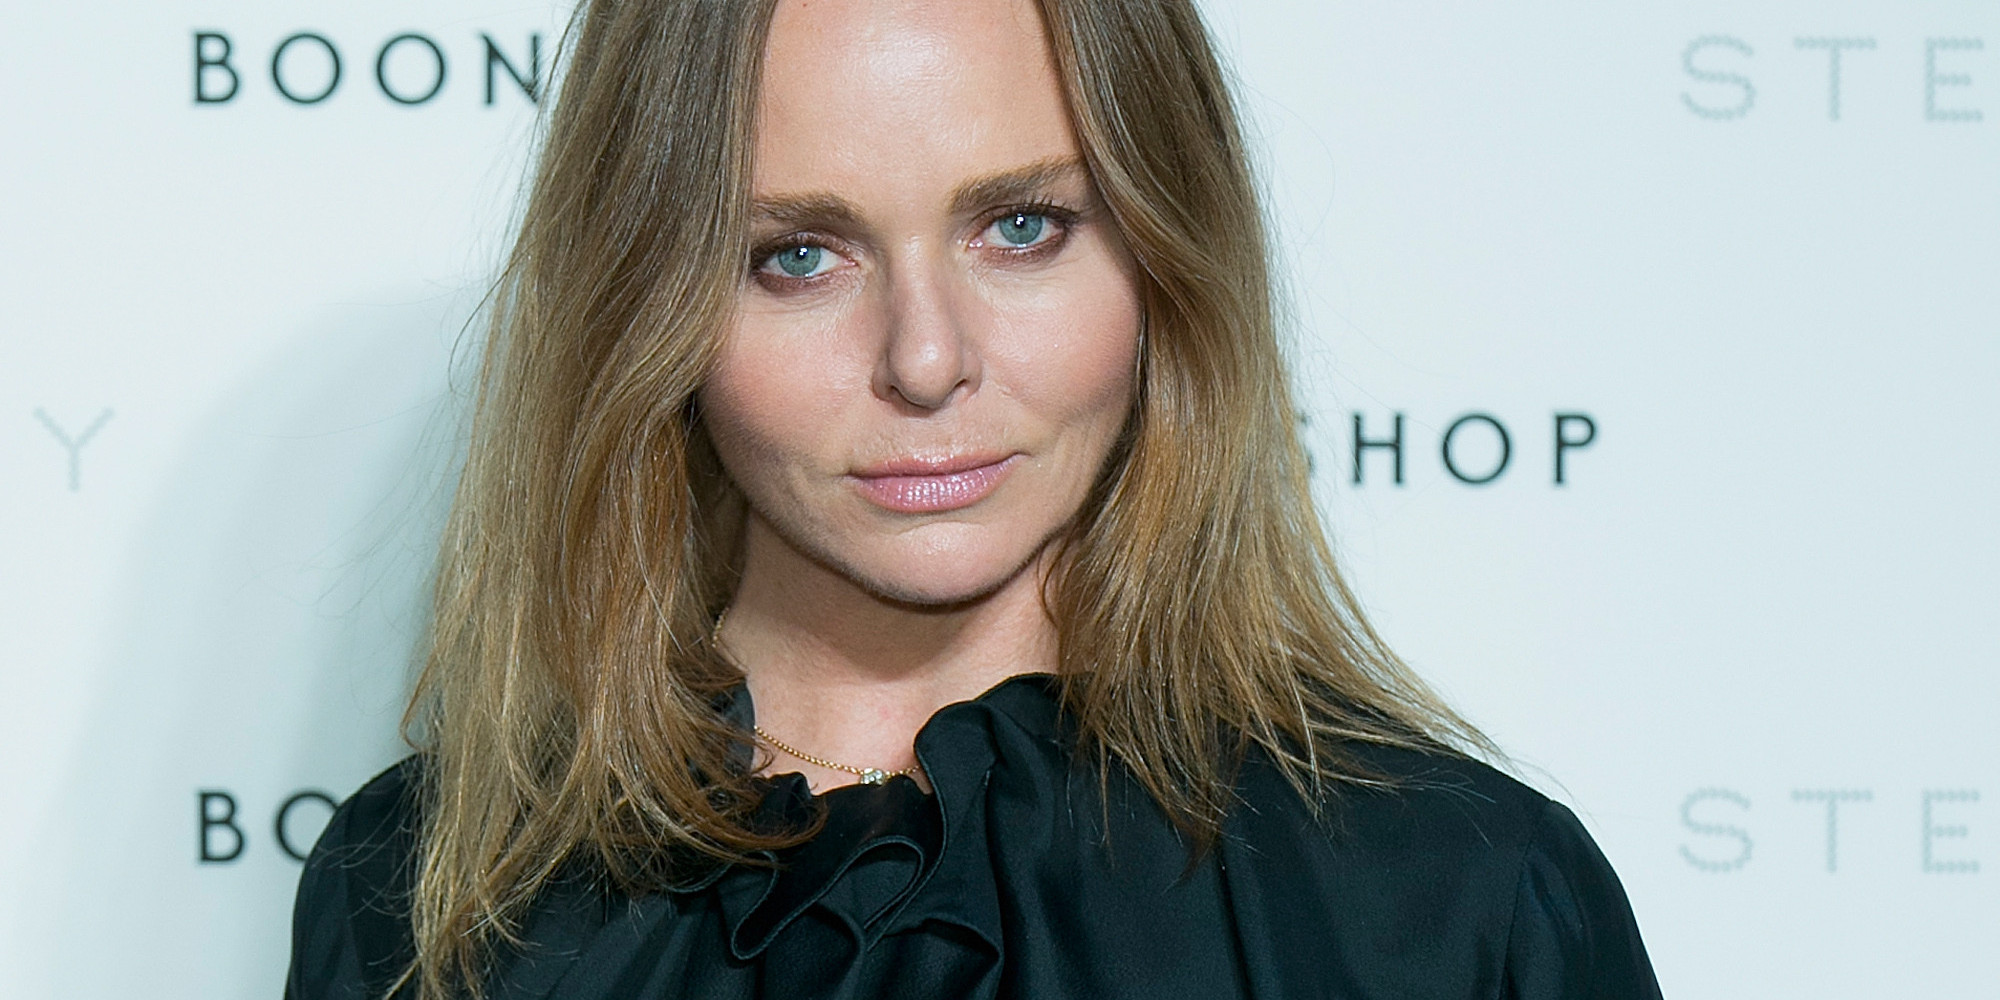 stella mccartney shares powerful mastectomy photos to raise awareness of breast cancer huffpost uk. Black Bedroom Furniture Sets. Home Design Ideas